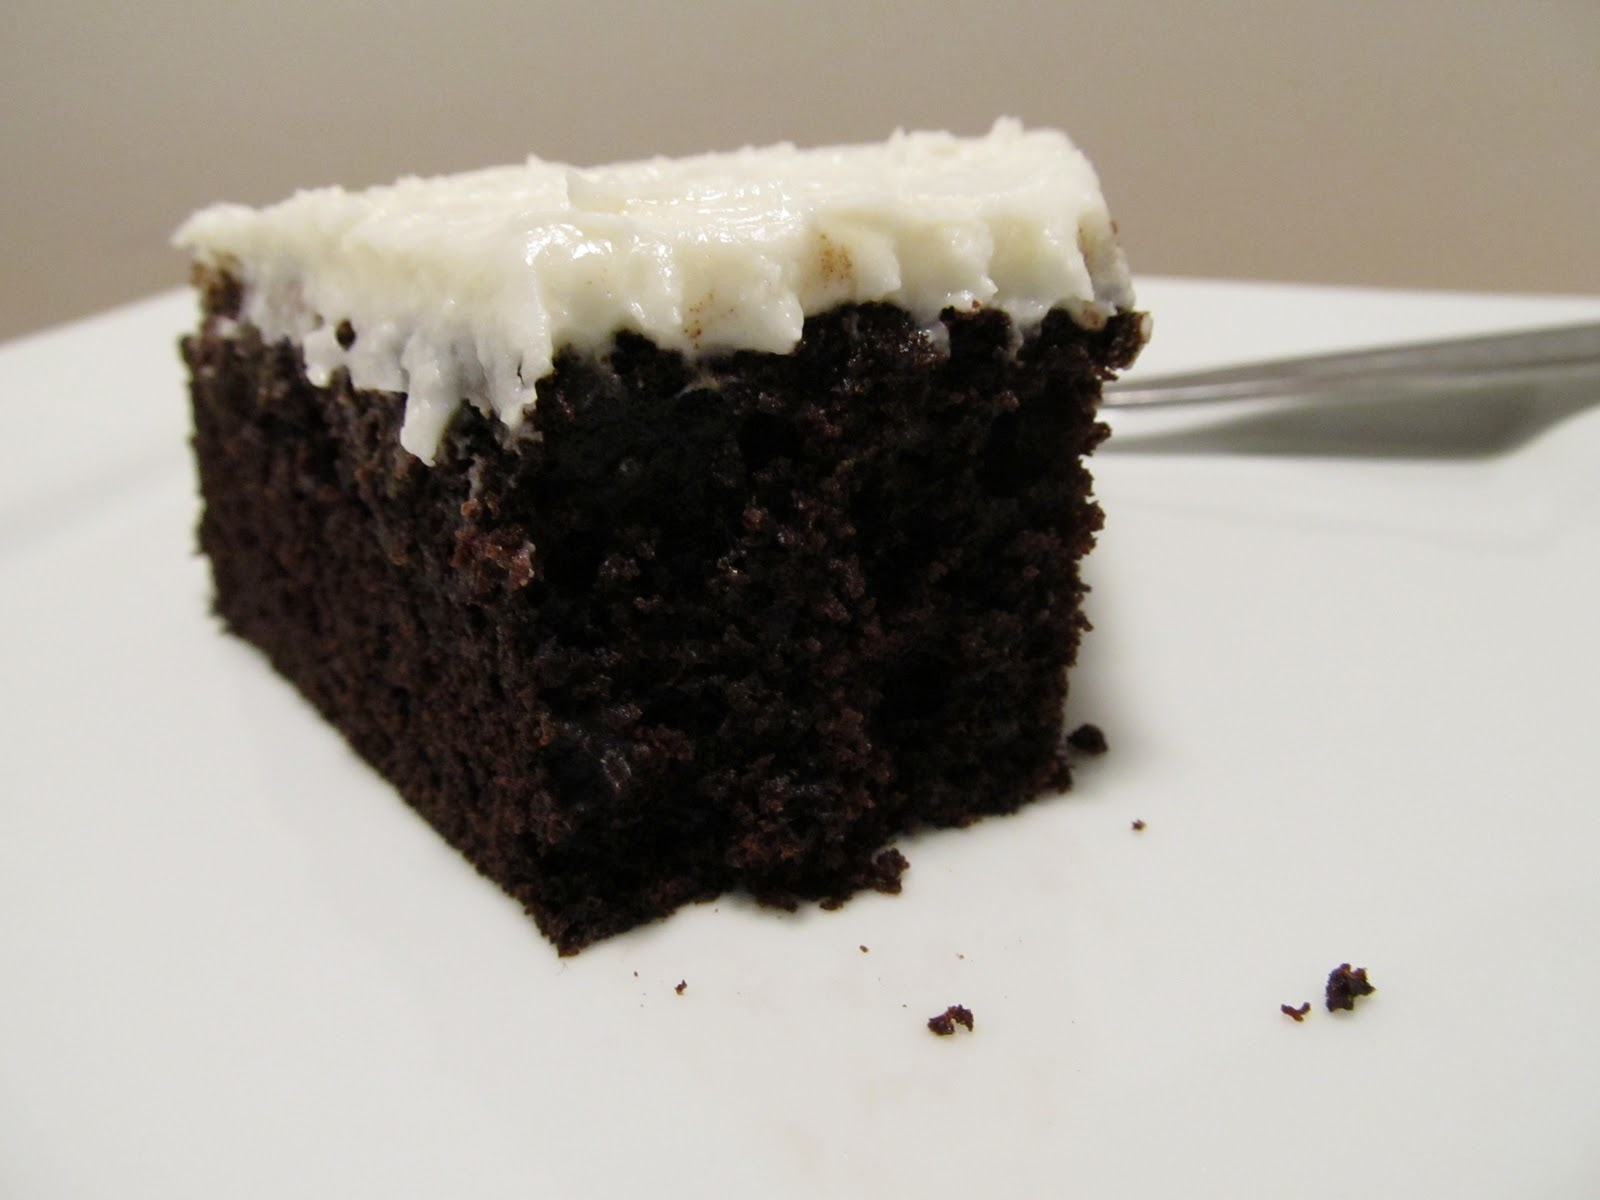 Jenn's Food Journey: Chocolate Mayonnaise Cake